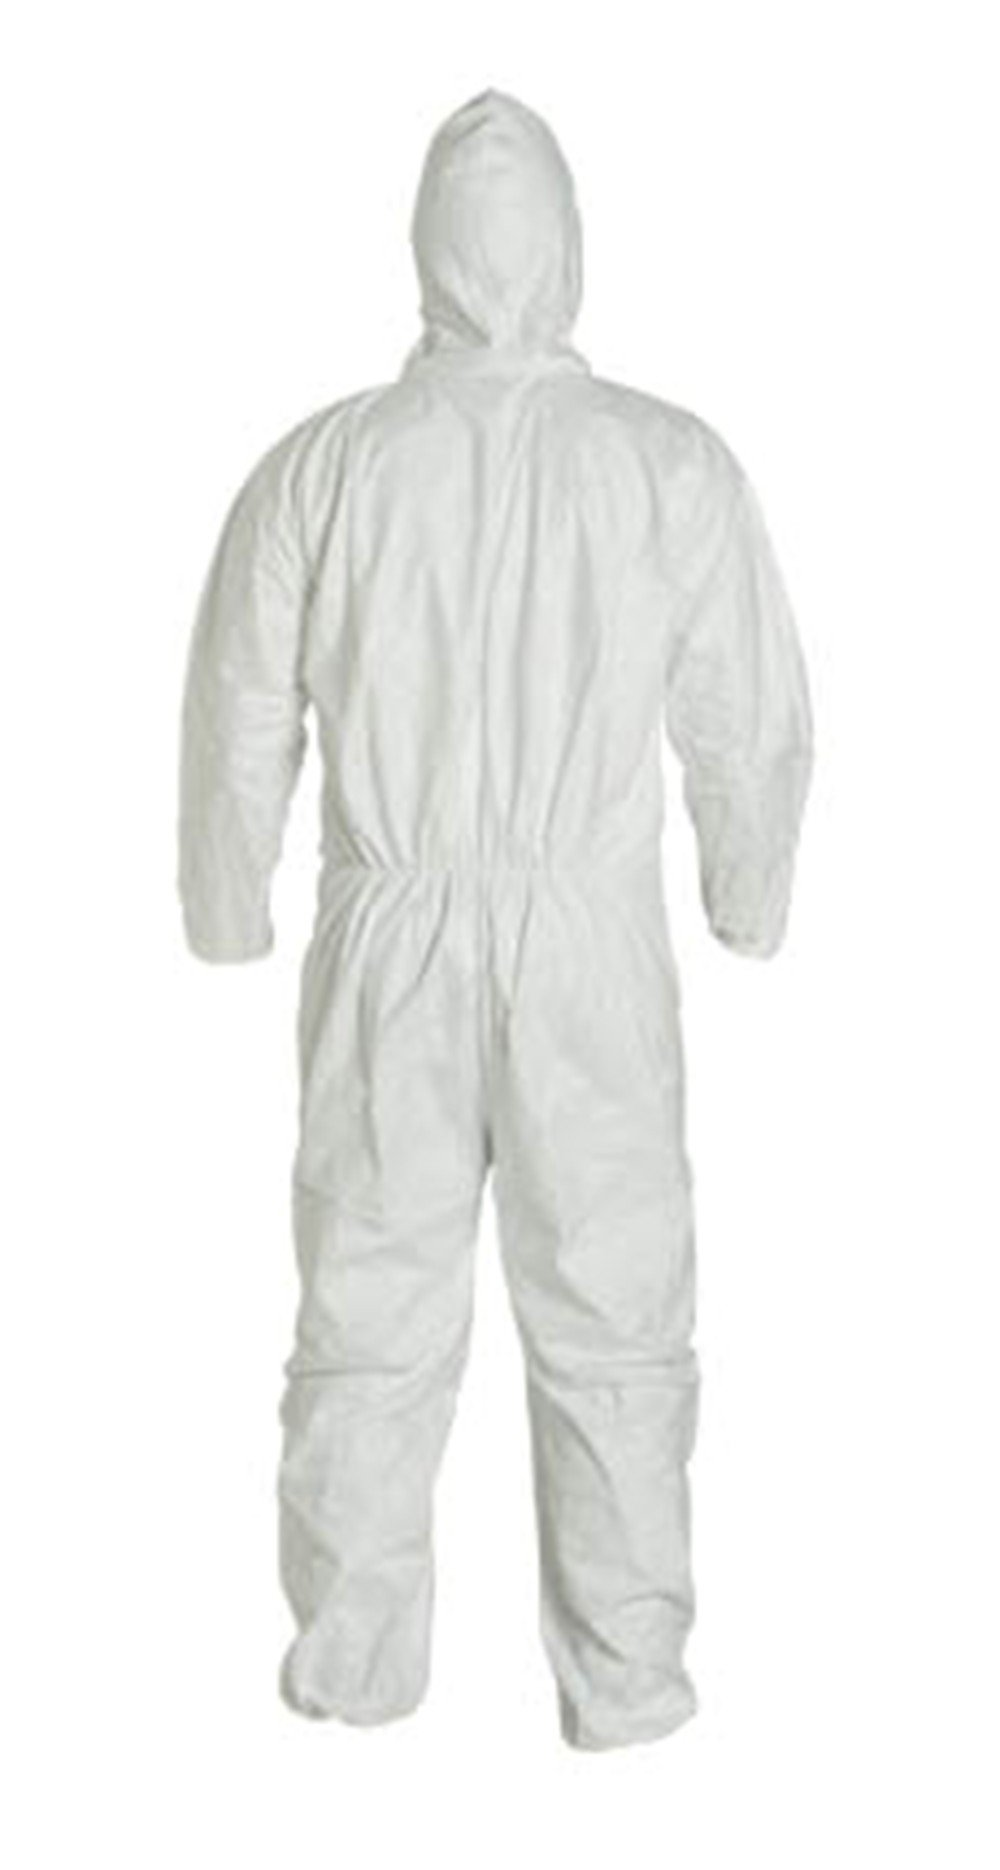 2XL Tyvek Coverall W/ Hood, Zipper, Elastic Wrist & Ankle (2XL-10 Suits) TY127S WH - 2XL - 10 by Tyvek (Image #4)